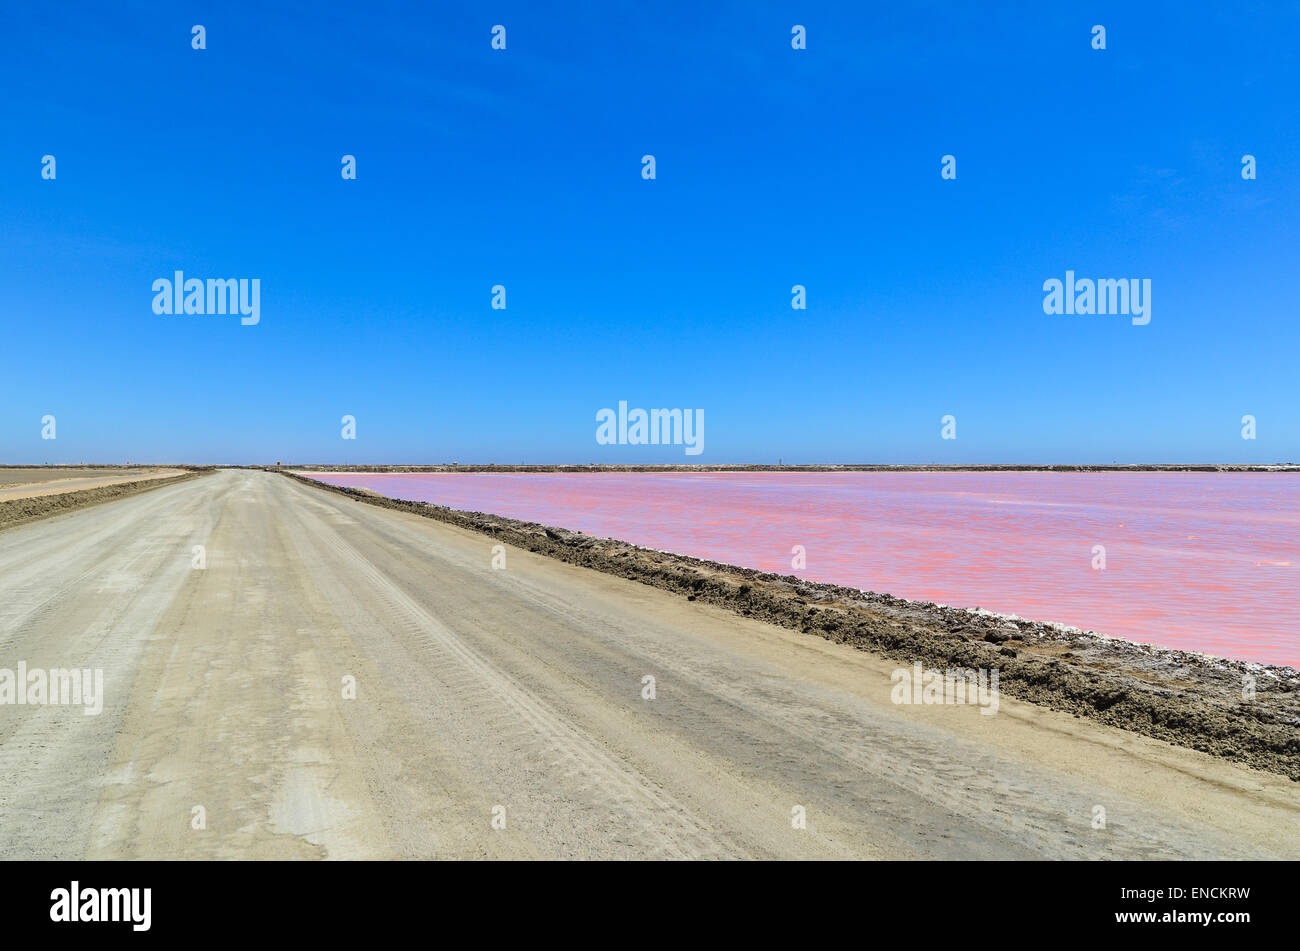 Dirt road and pink water of the salt works in Walvis Bay, Namibia, in the Namib desert - Stock Image